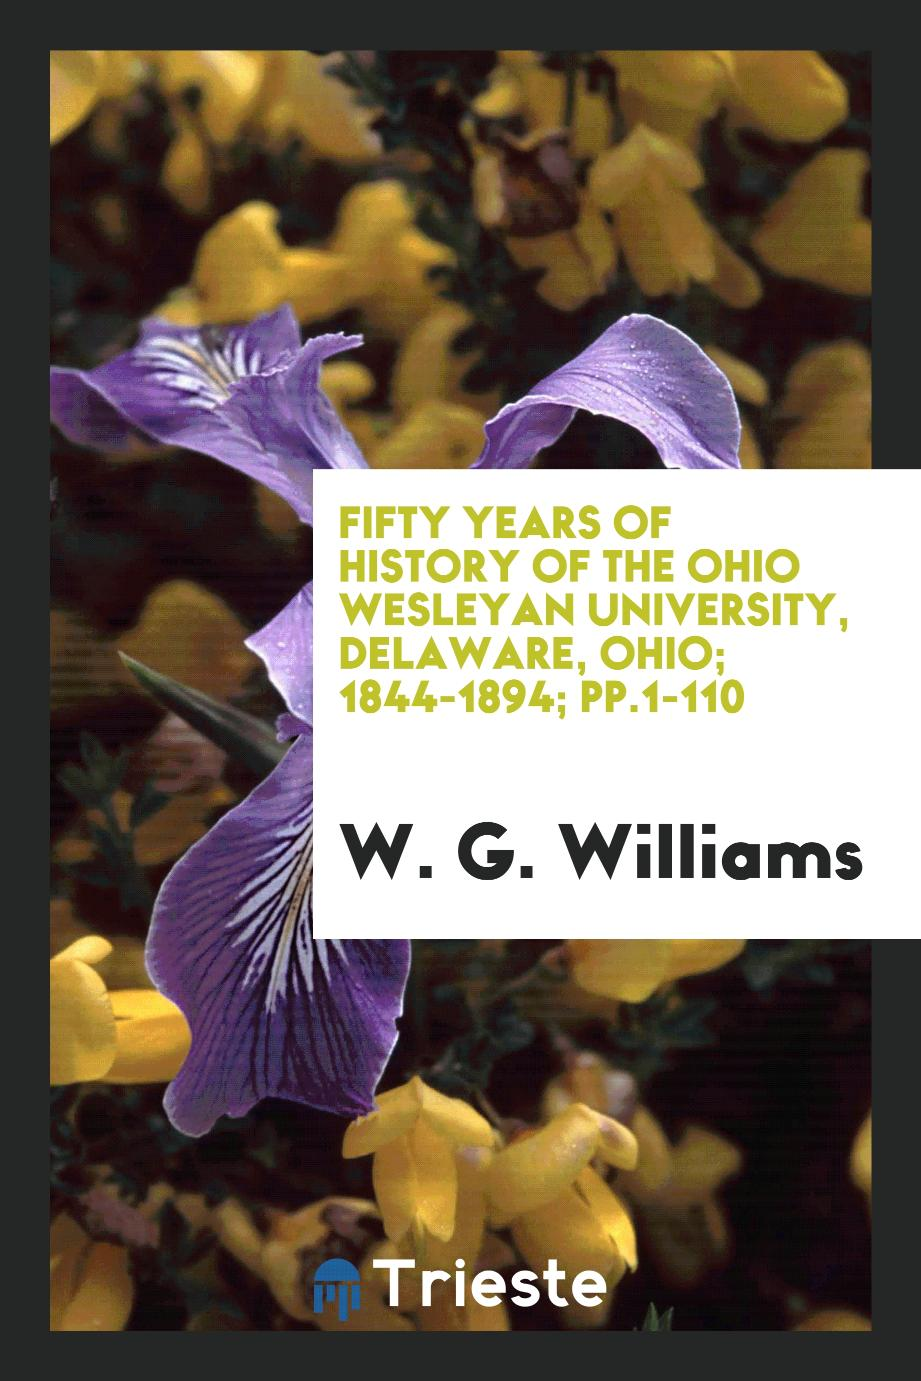 W. G. Williams - Fifty Years of History of the Ohio Wesleyan University, Delaware, Ohio; 1844-1894; pp.1-110